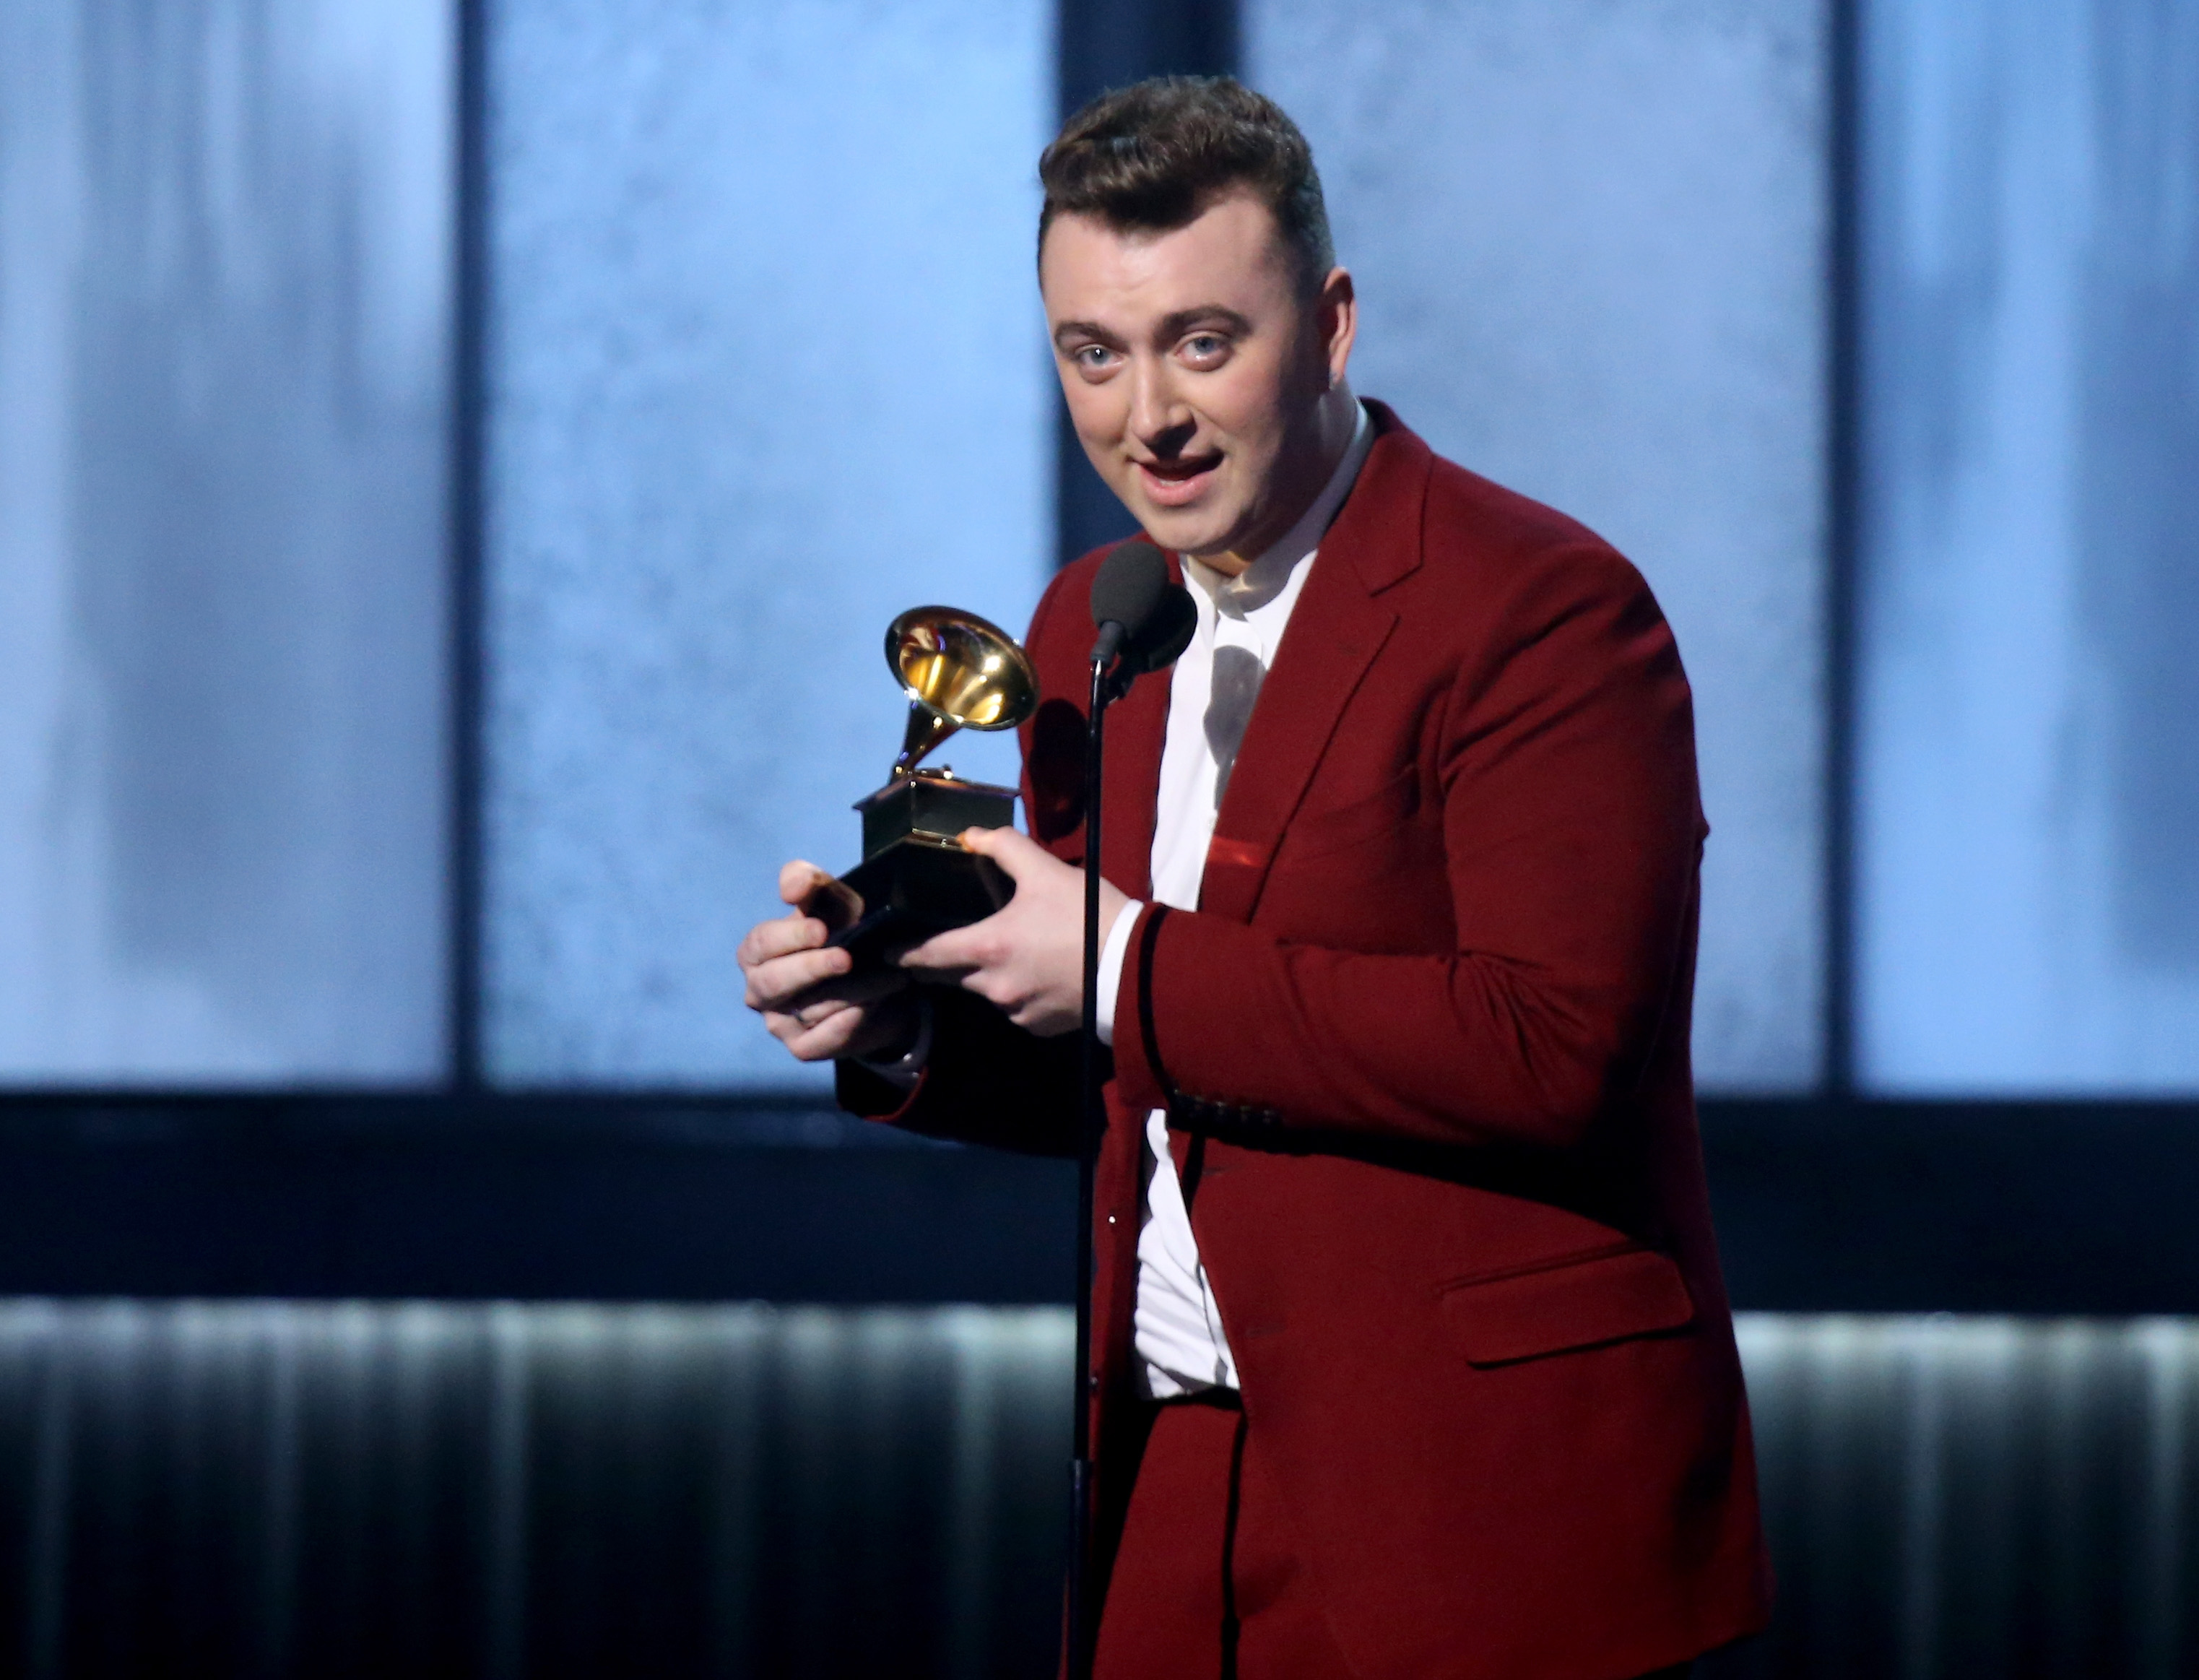 LOS ANGELES, CA - FEBRUARY 08:  Singer/songwriter Sam Smith accepts and award onstage during The 57th Annual GRAMMY Awards at